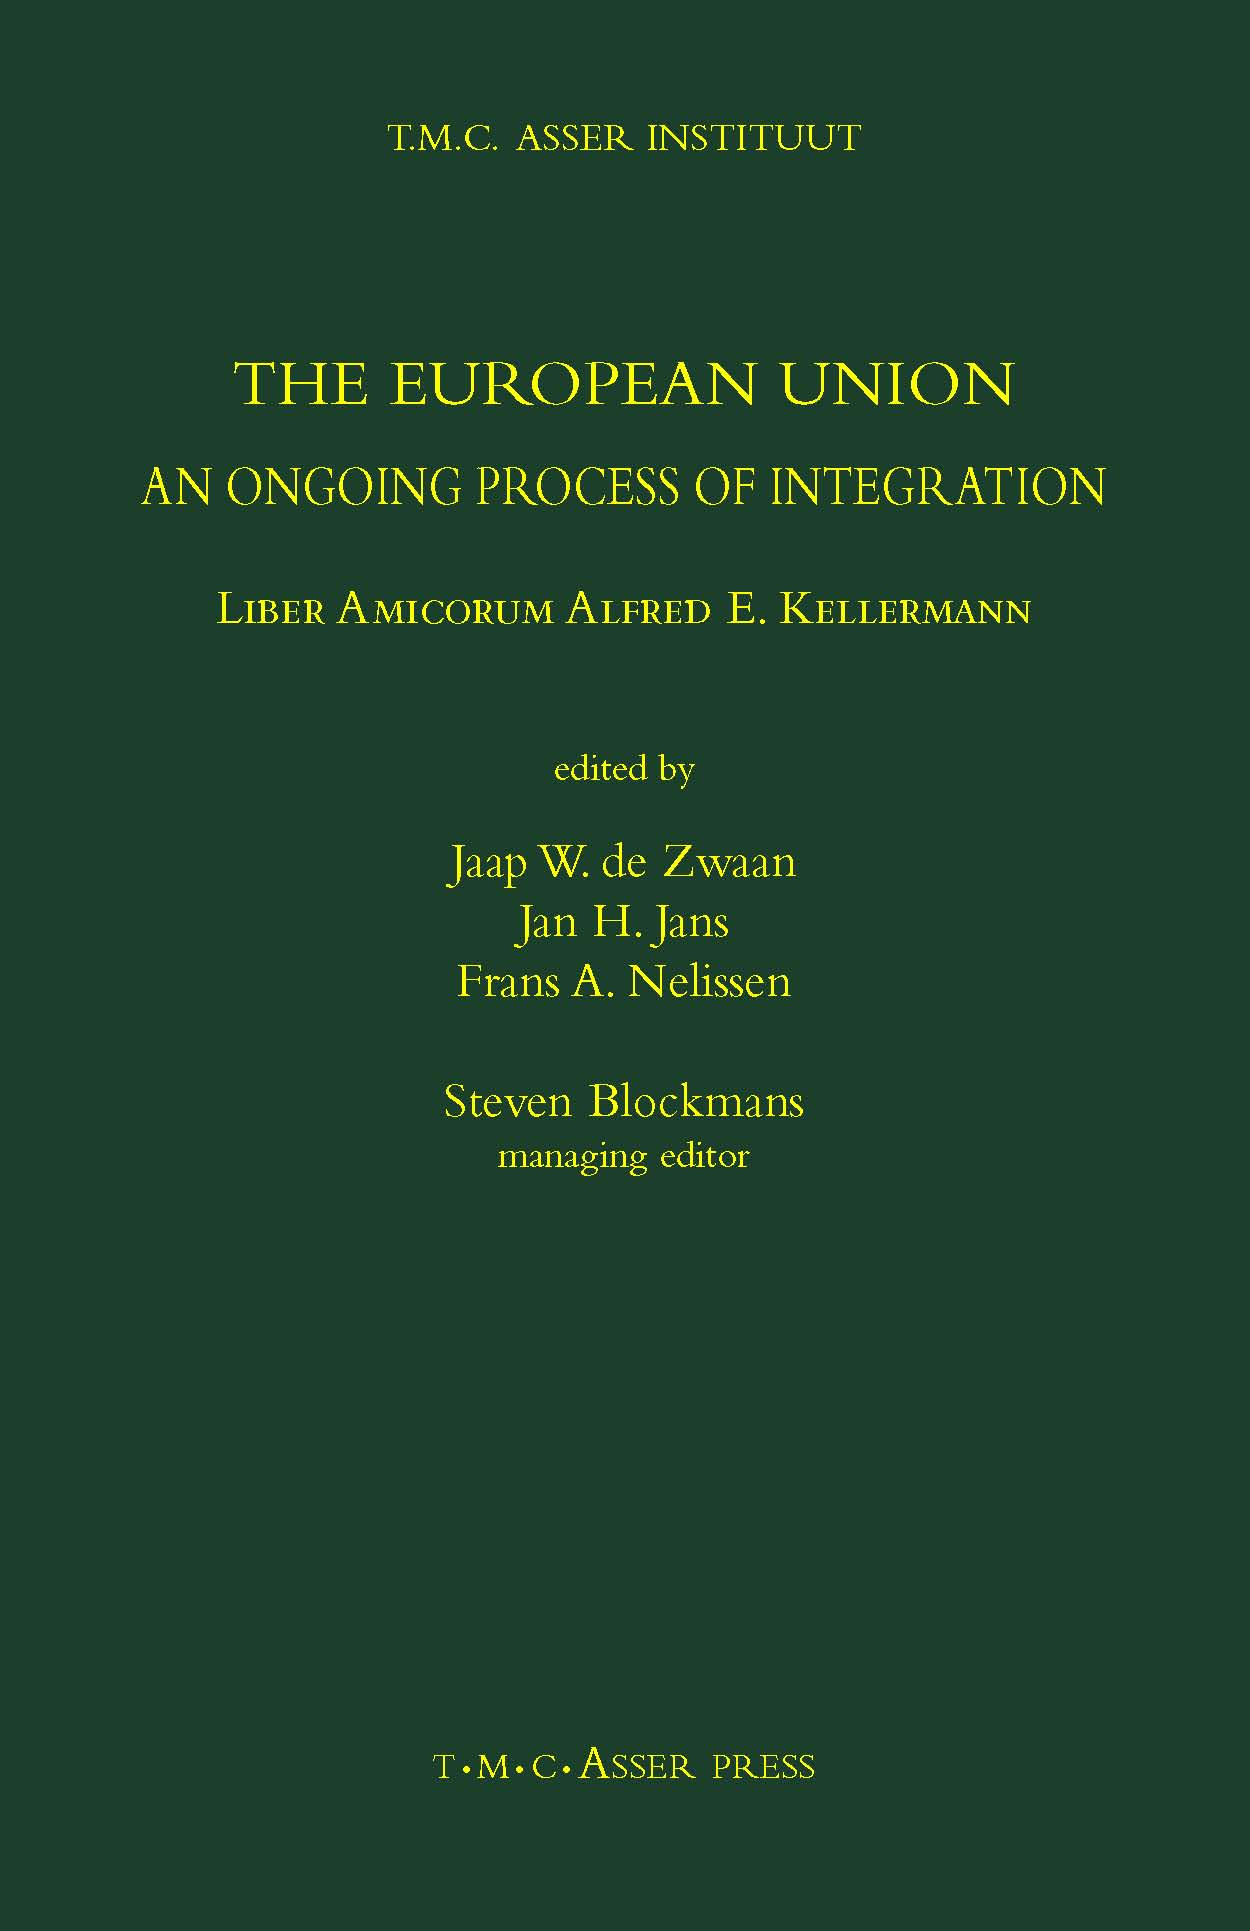 The European Union - An Ongoing Process of Integration - Liber Amicorum Alfred E. Kellermann